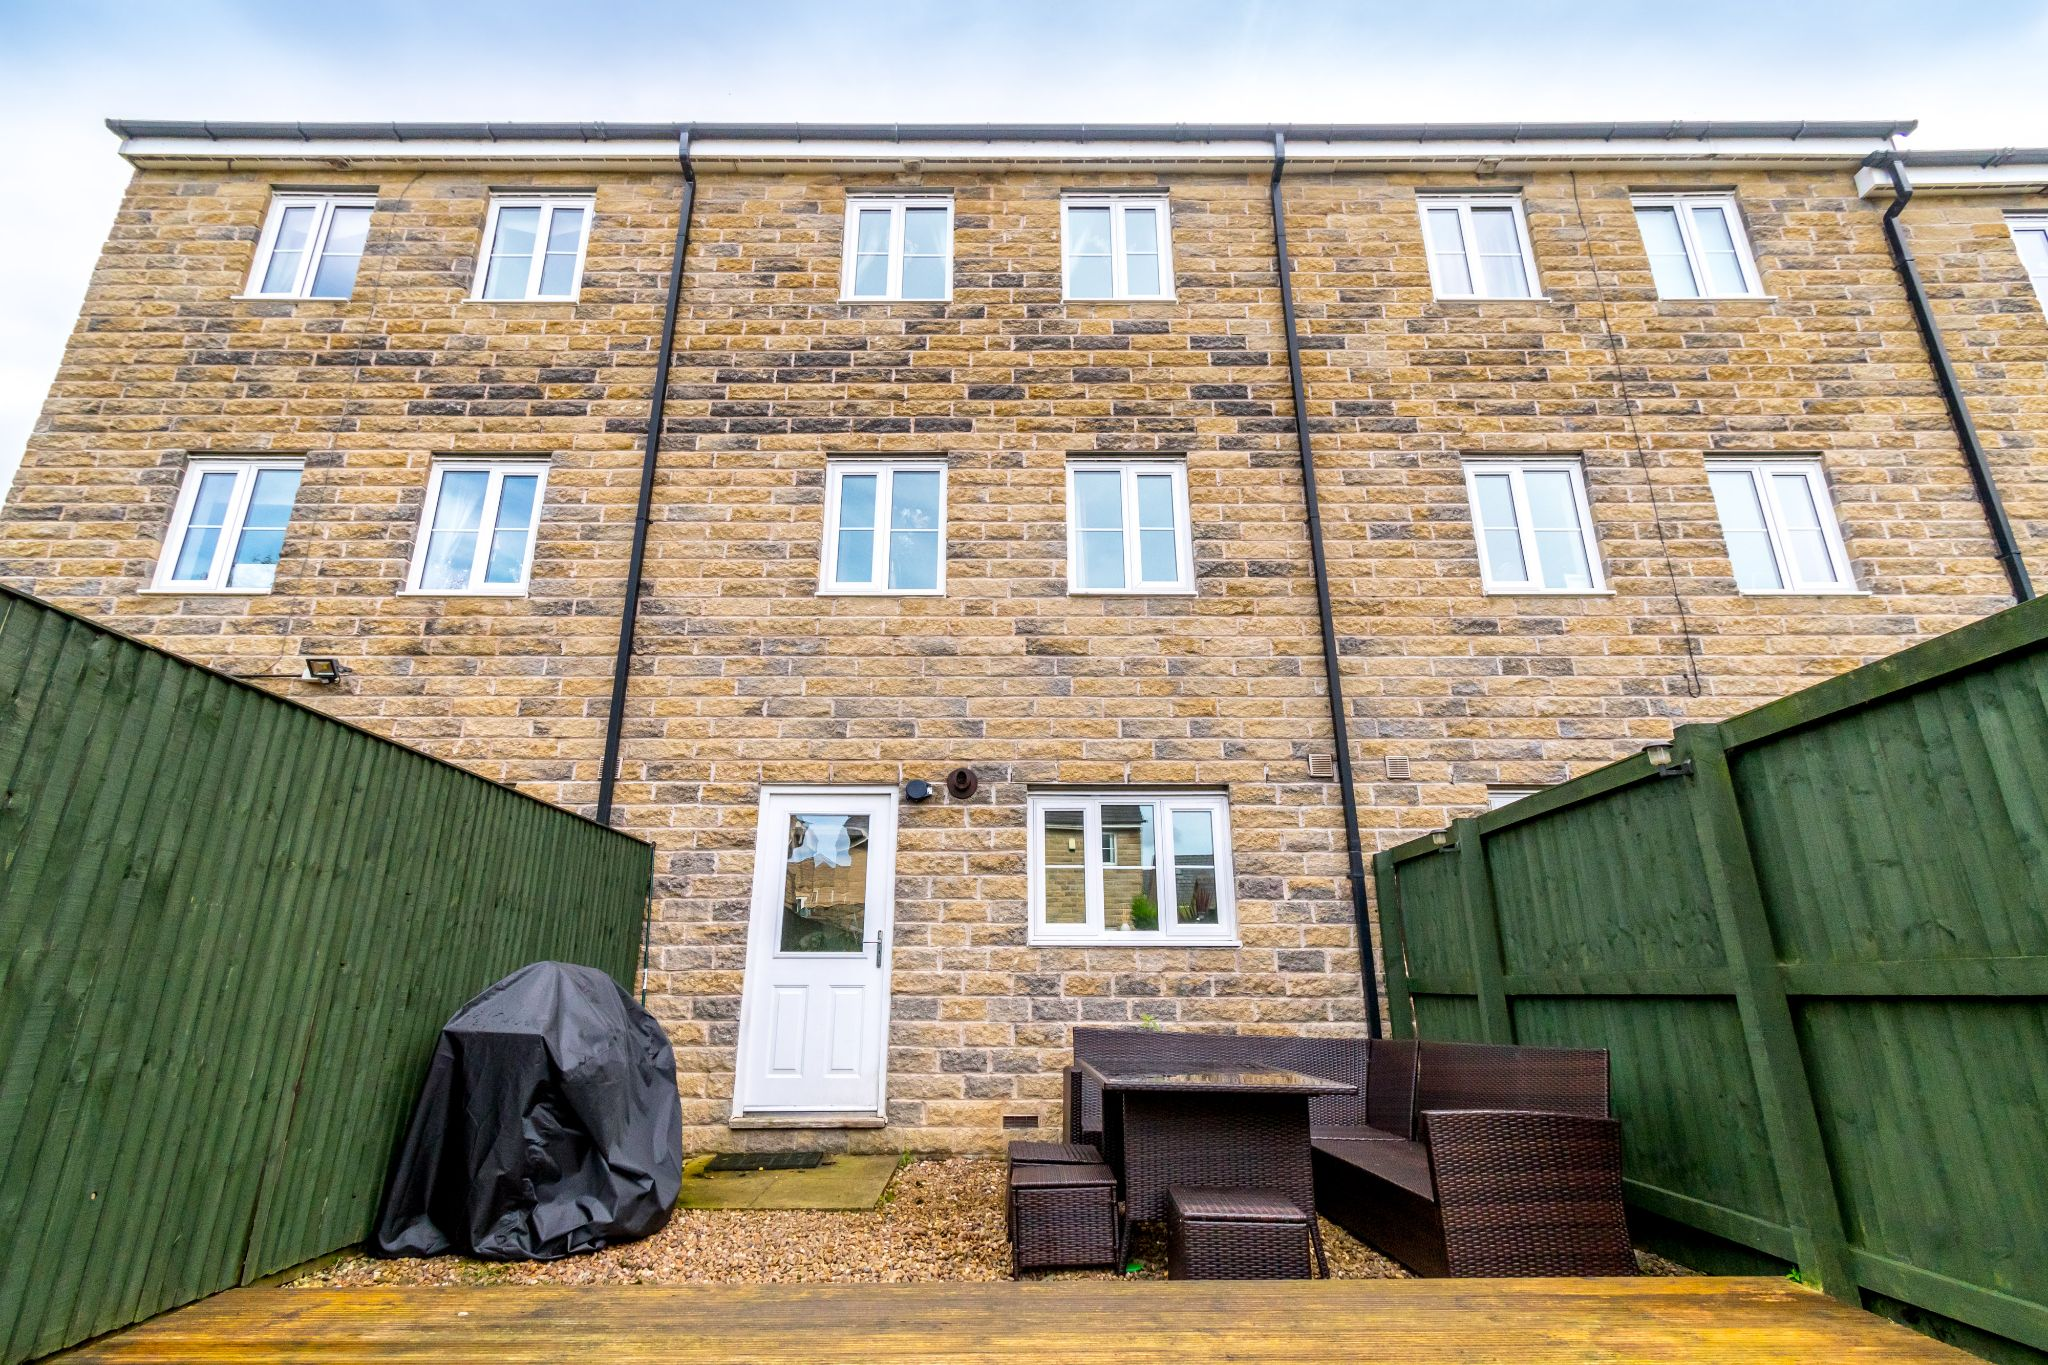 4 bedroom mid terraced house SSTC in Brighouse - Photograph 25